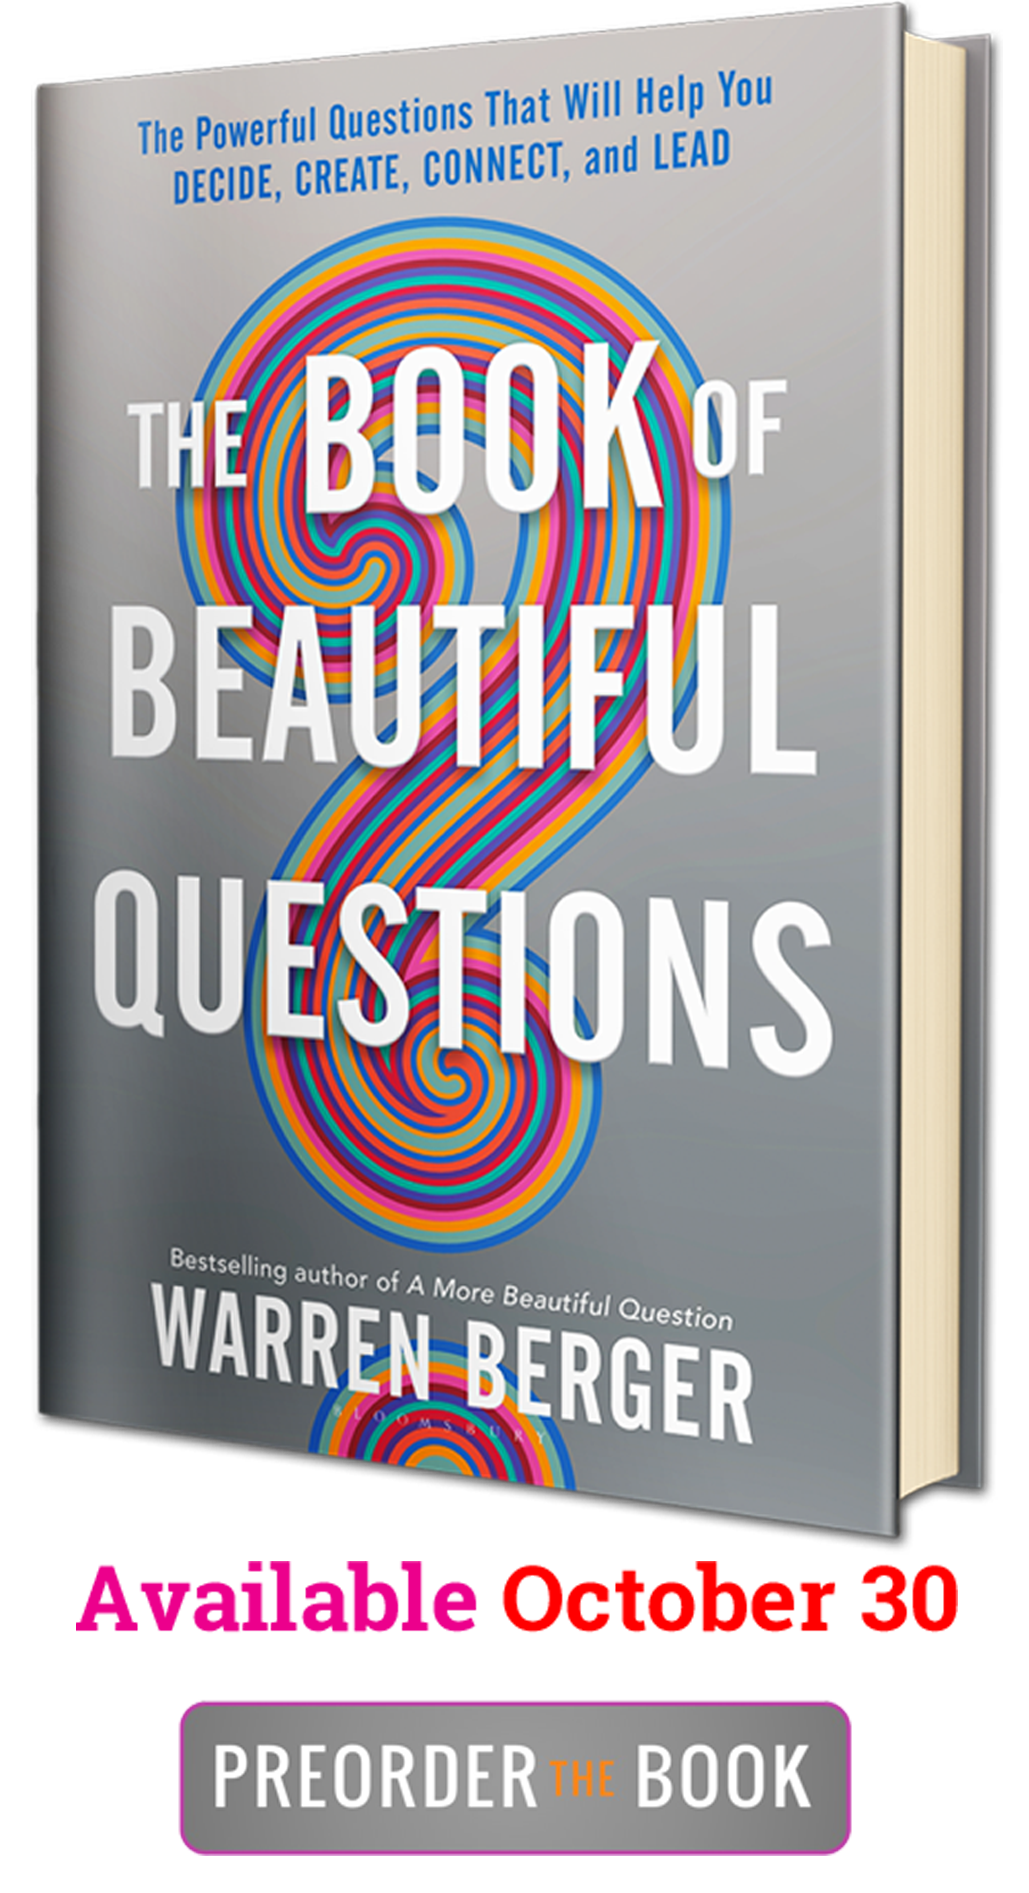 Preorder THE BOOK OF BEAUTIFUL QUESTIONS